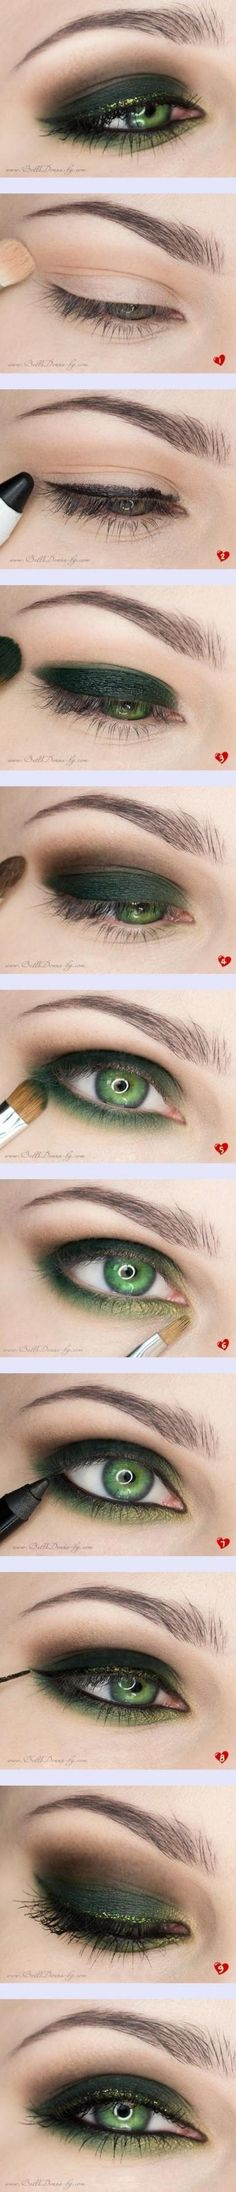 While I think this is beautiful with green eyes, I feel like if I did this I would look like Kermit.